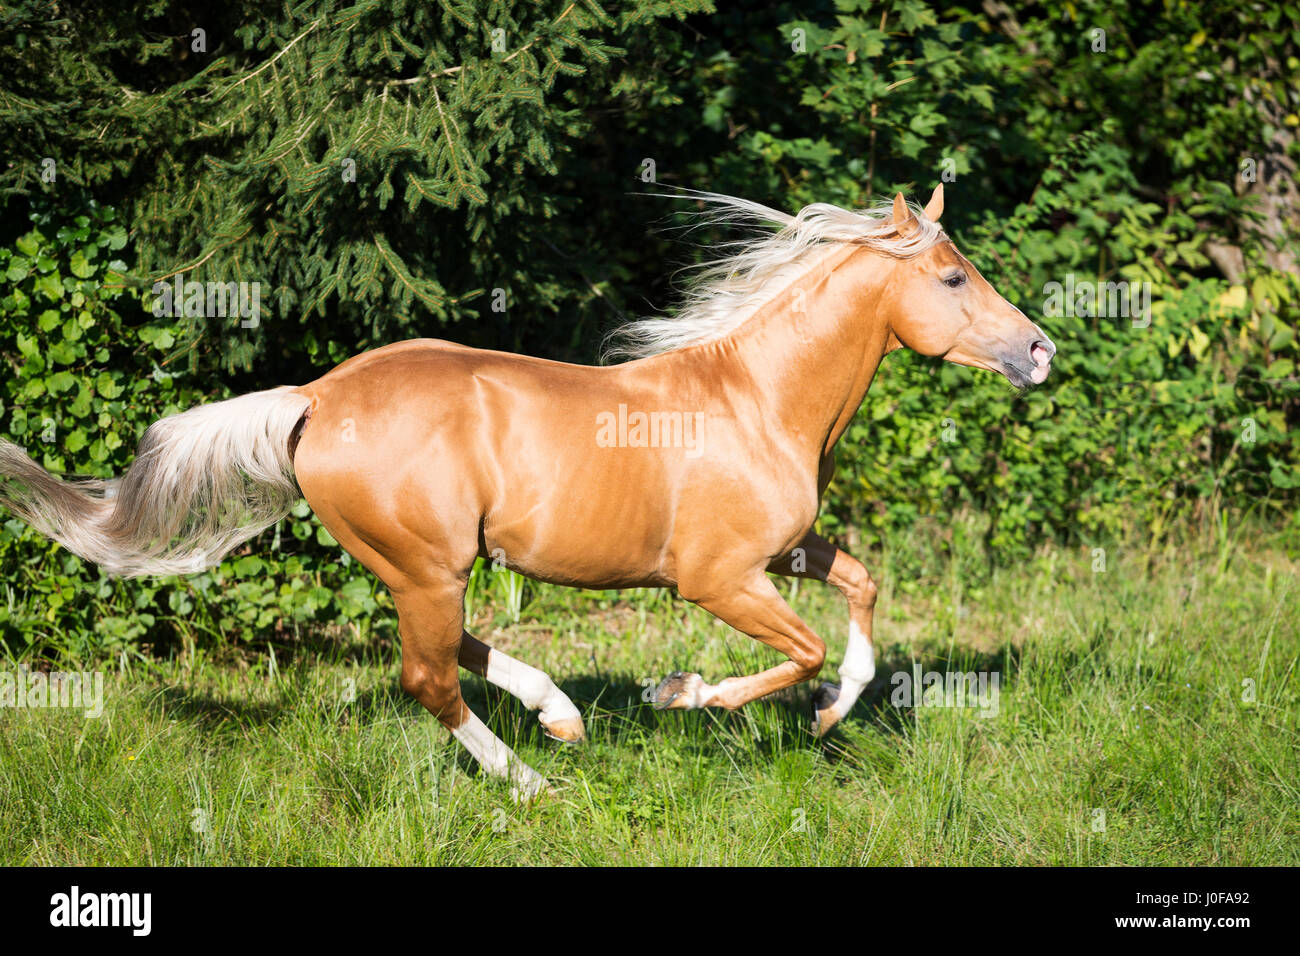 Anglo Arabian Palomino Stallion Galopping On A Pasture Austria Stock Photo Alamy